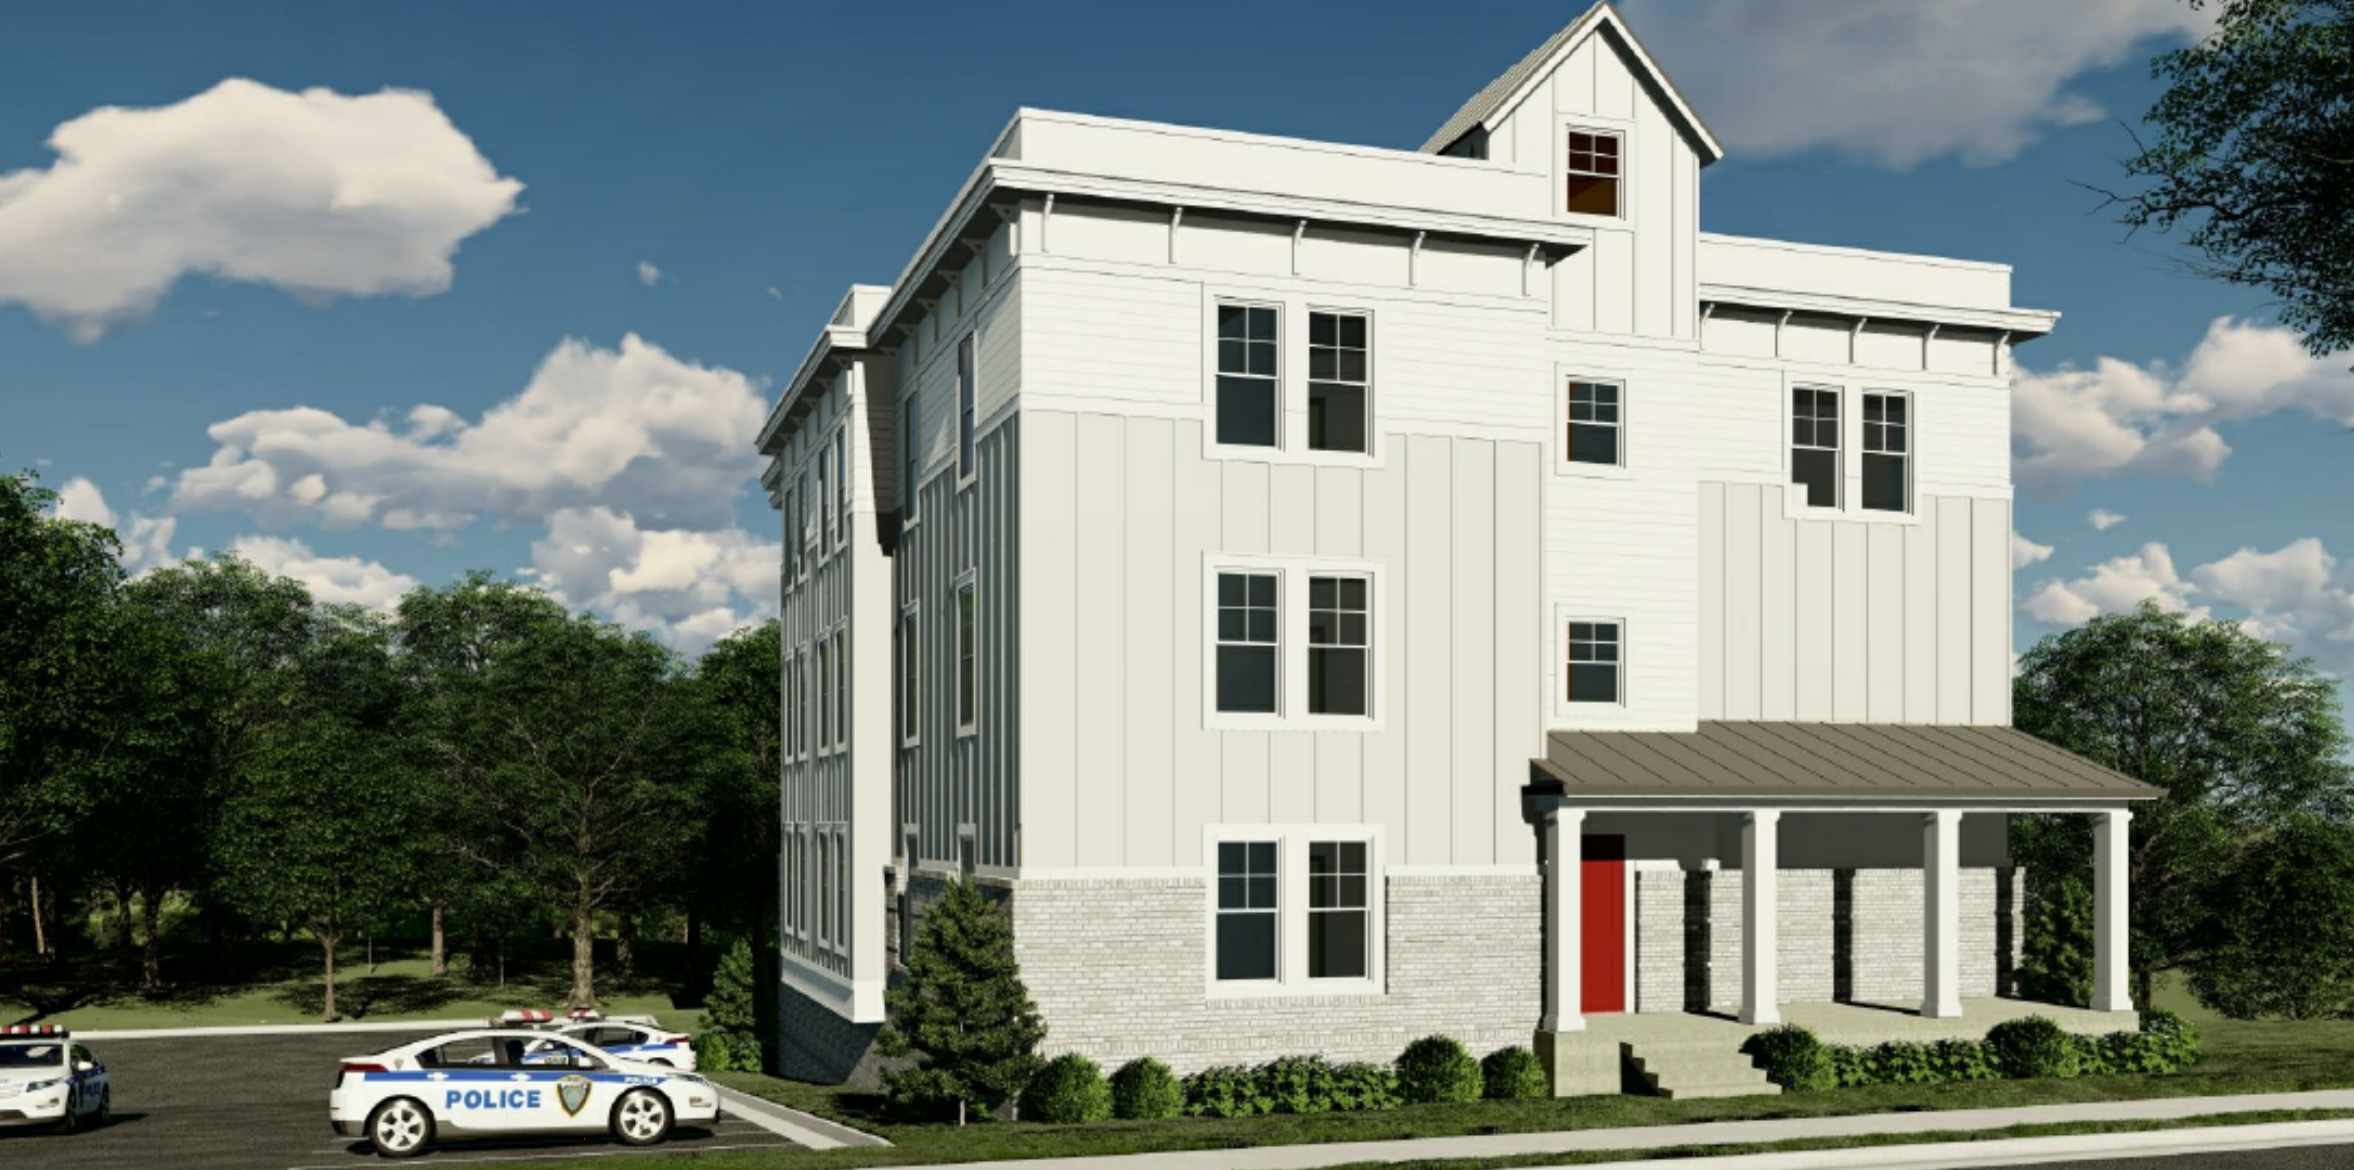 A rendering shows a plain, three story building with a red door.